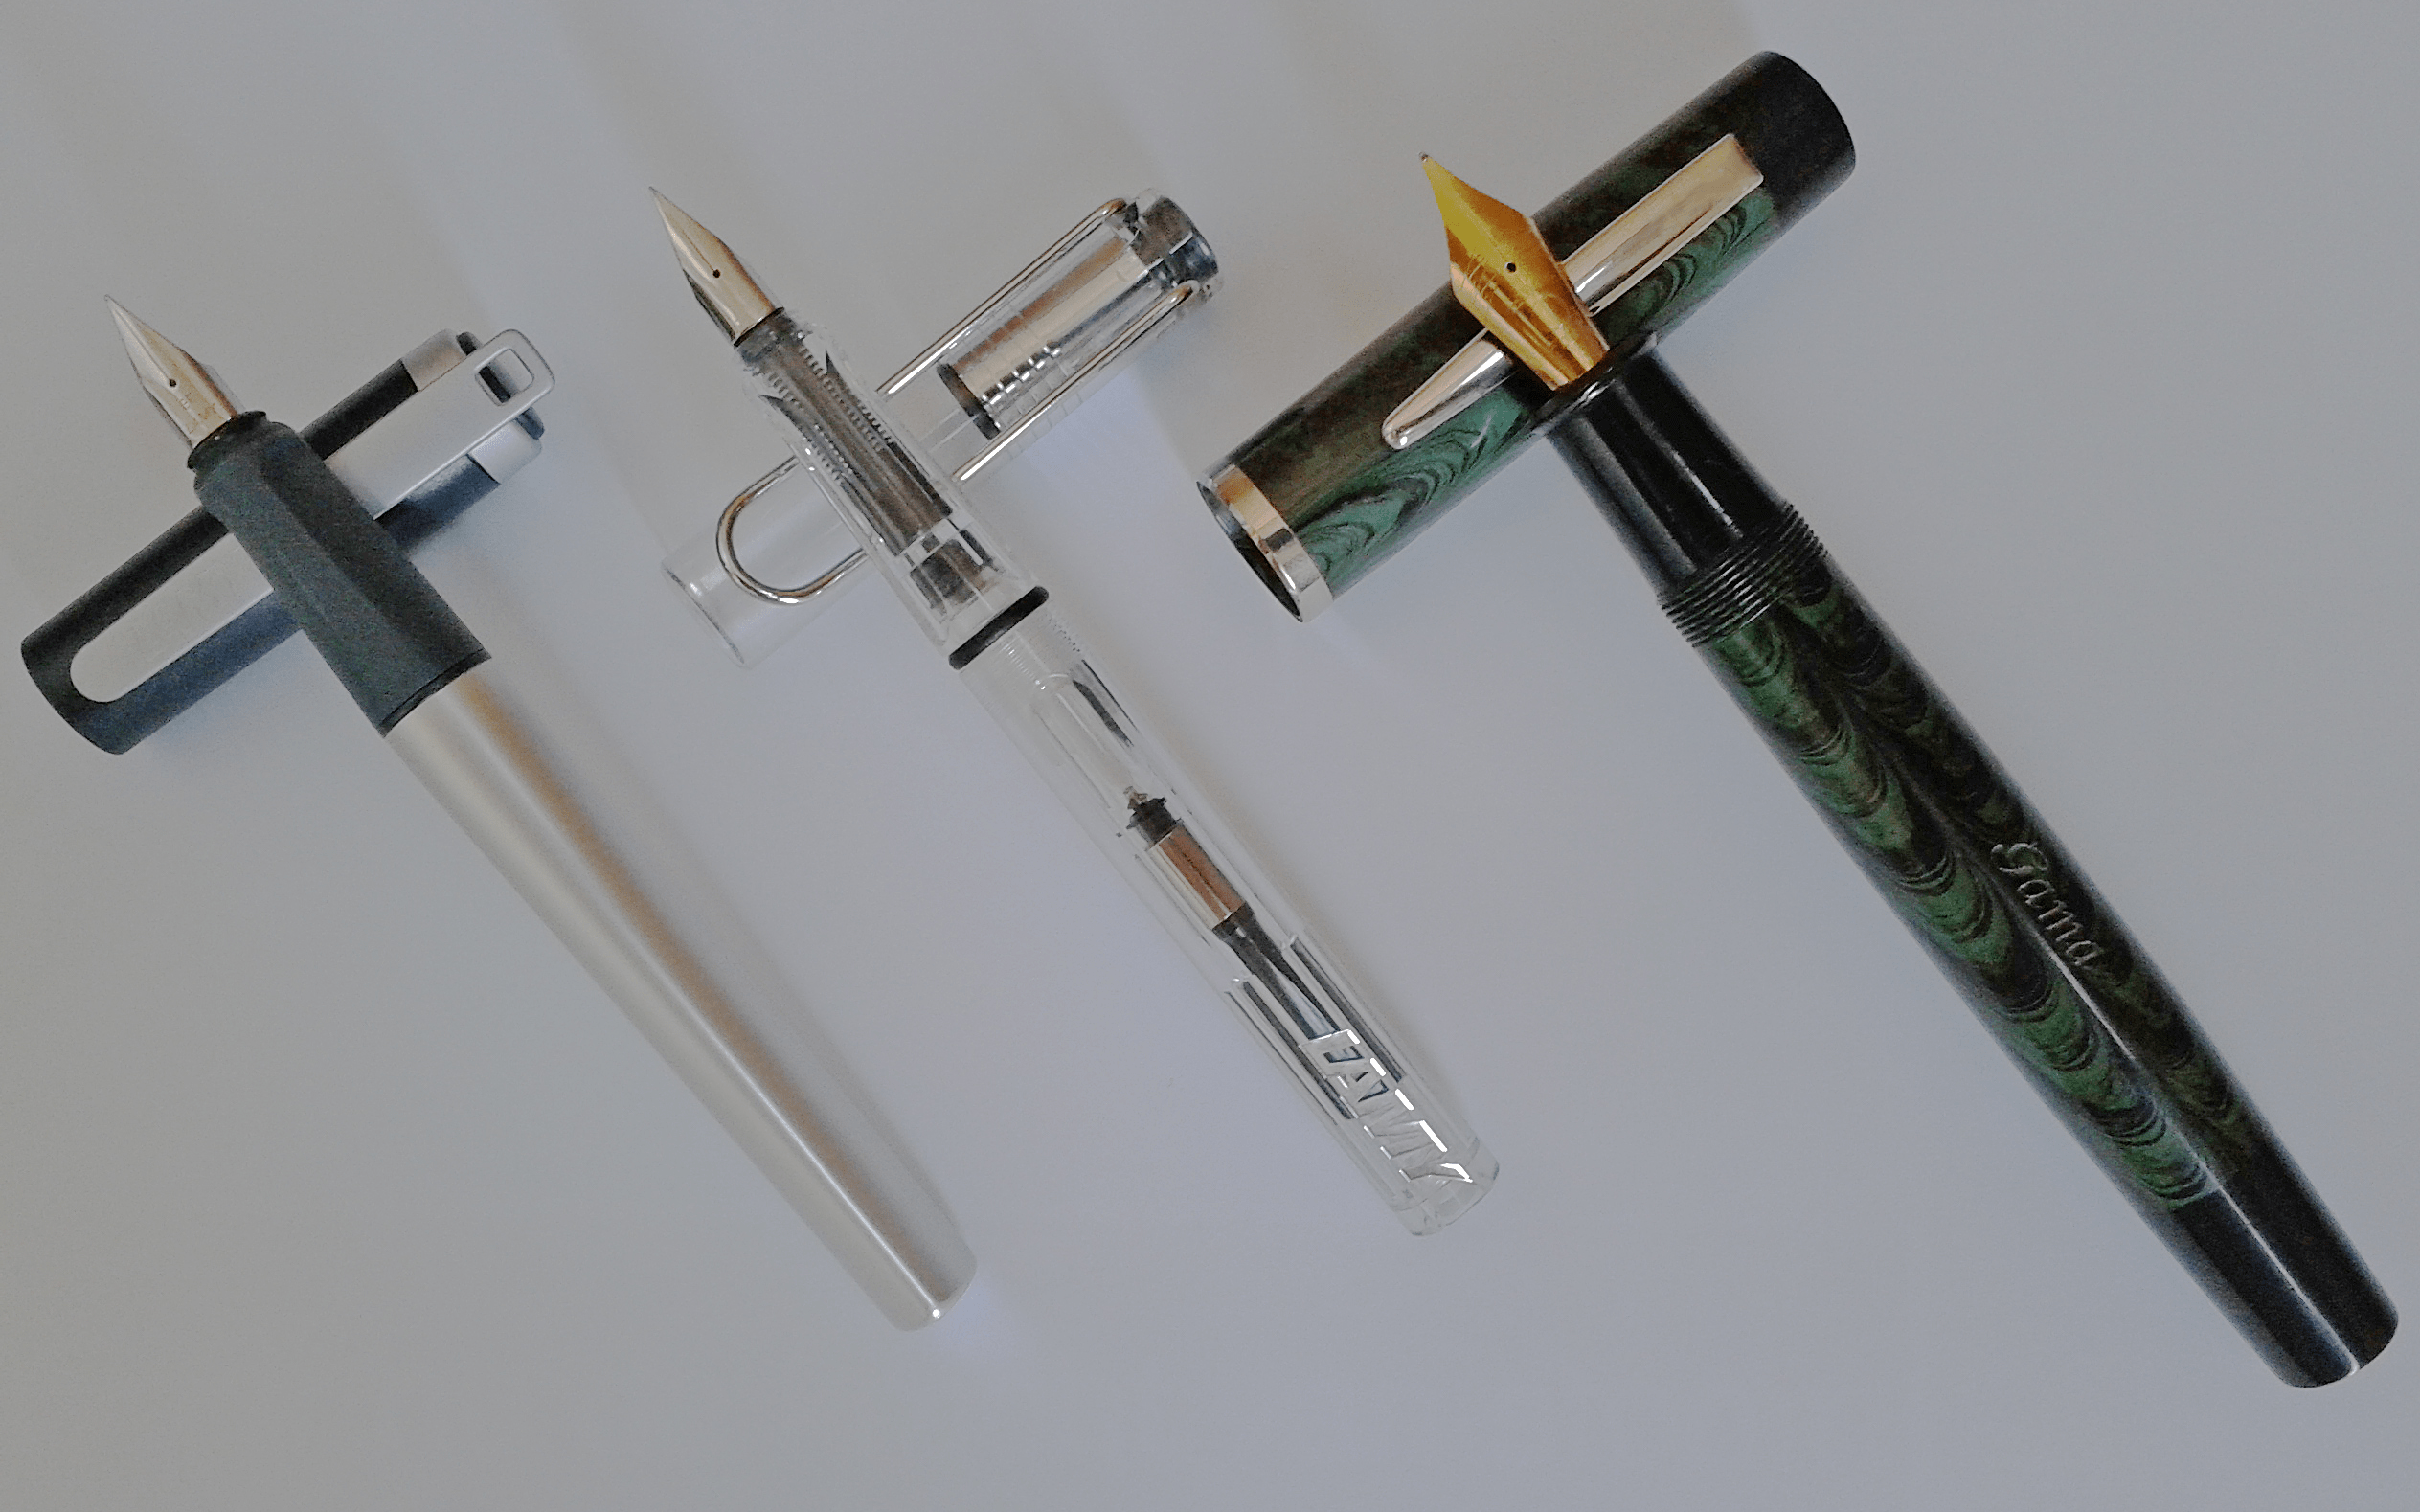 What is the advantage of a fountain pen?